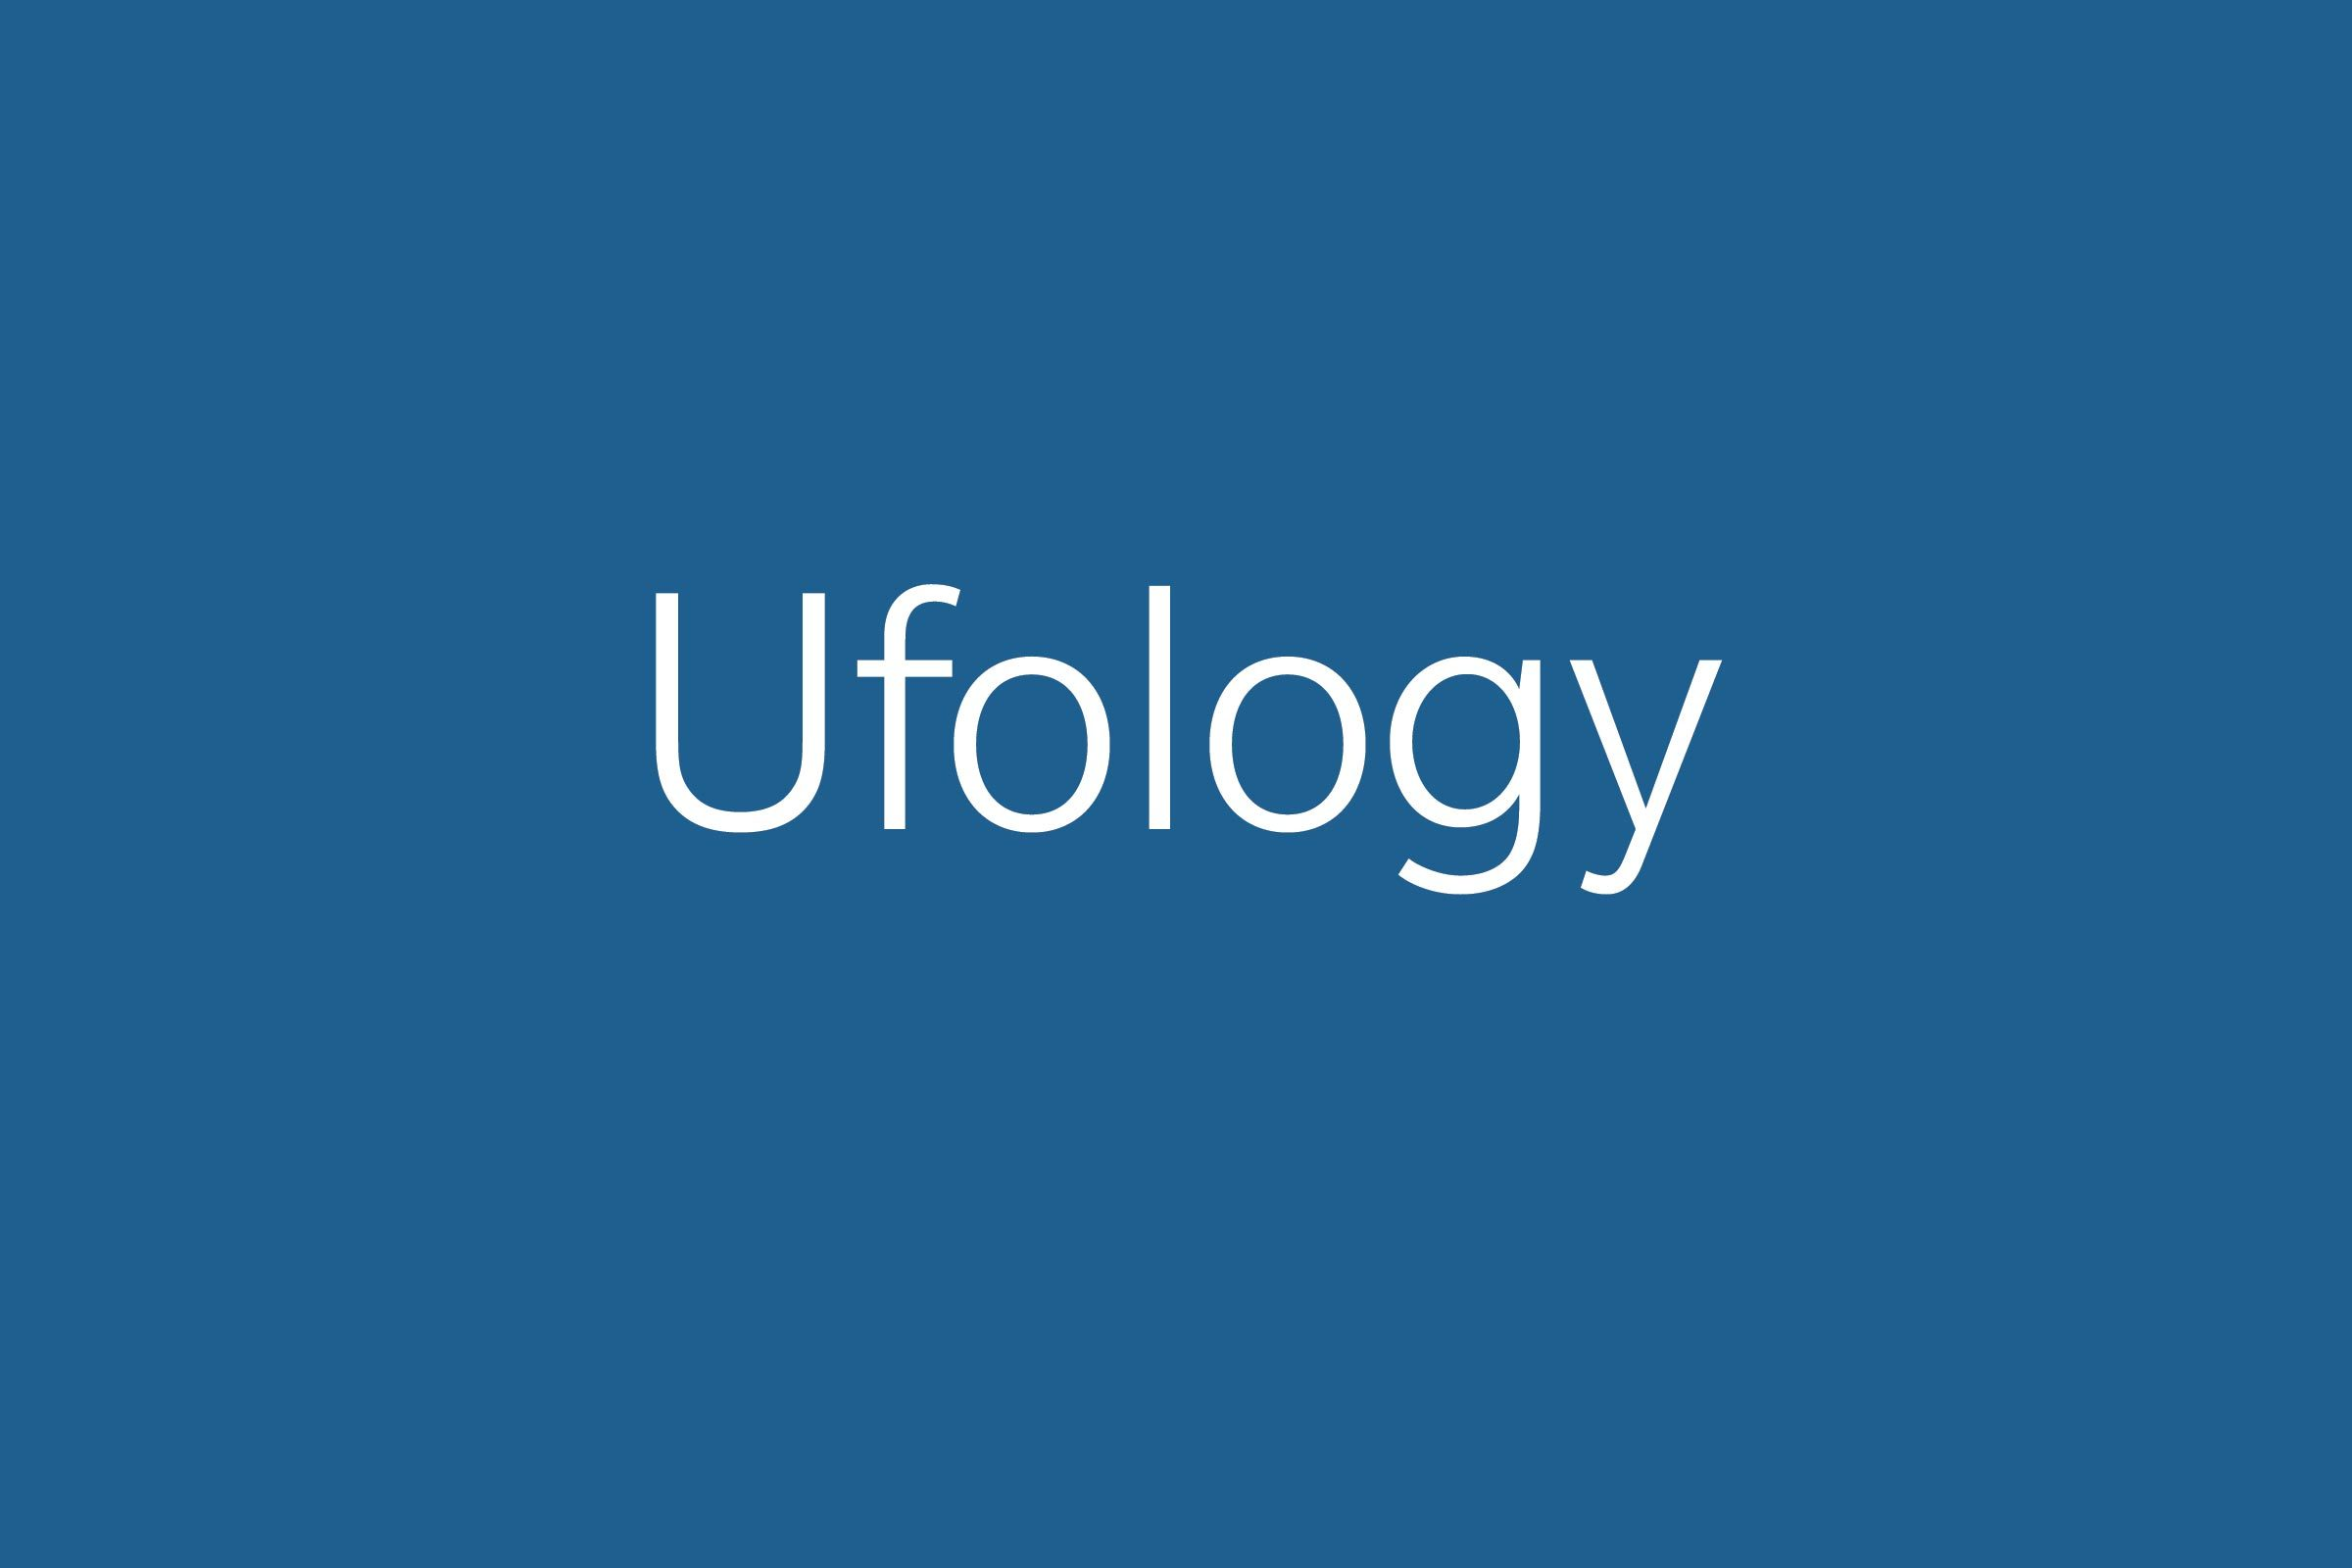 ufology funny word funny words to say